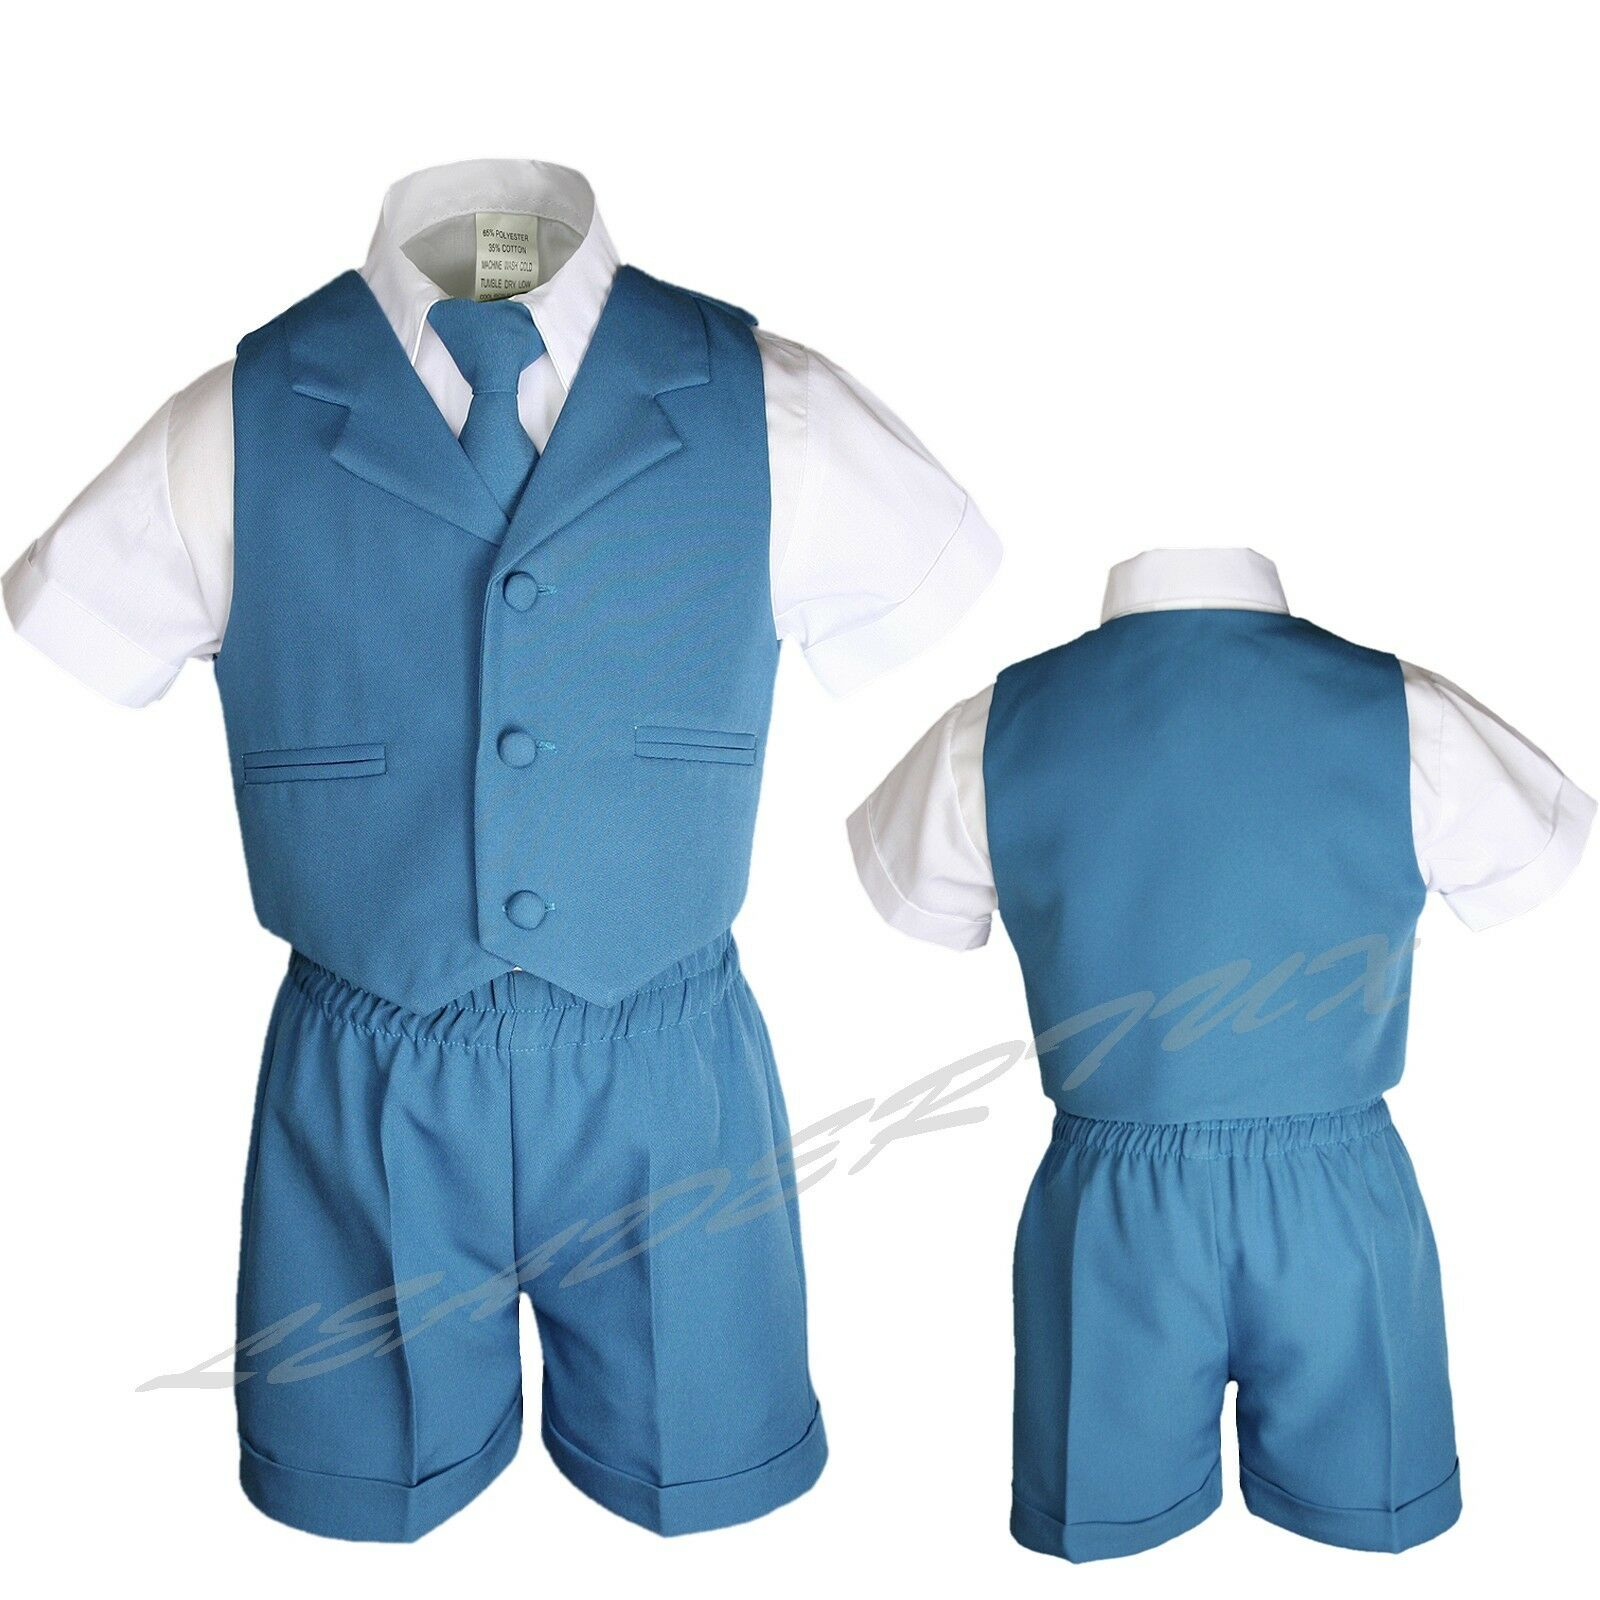 Baby & Toddler Clothing , Clothing, Shoes & Accessories